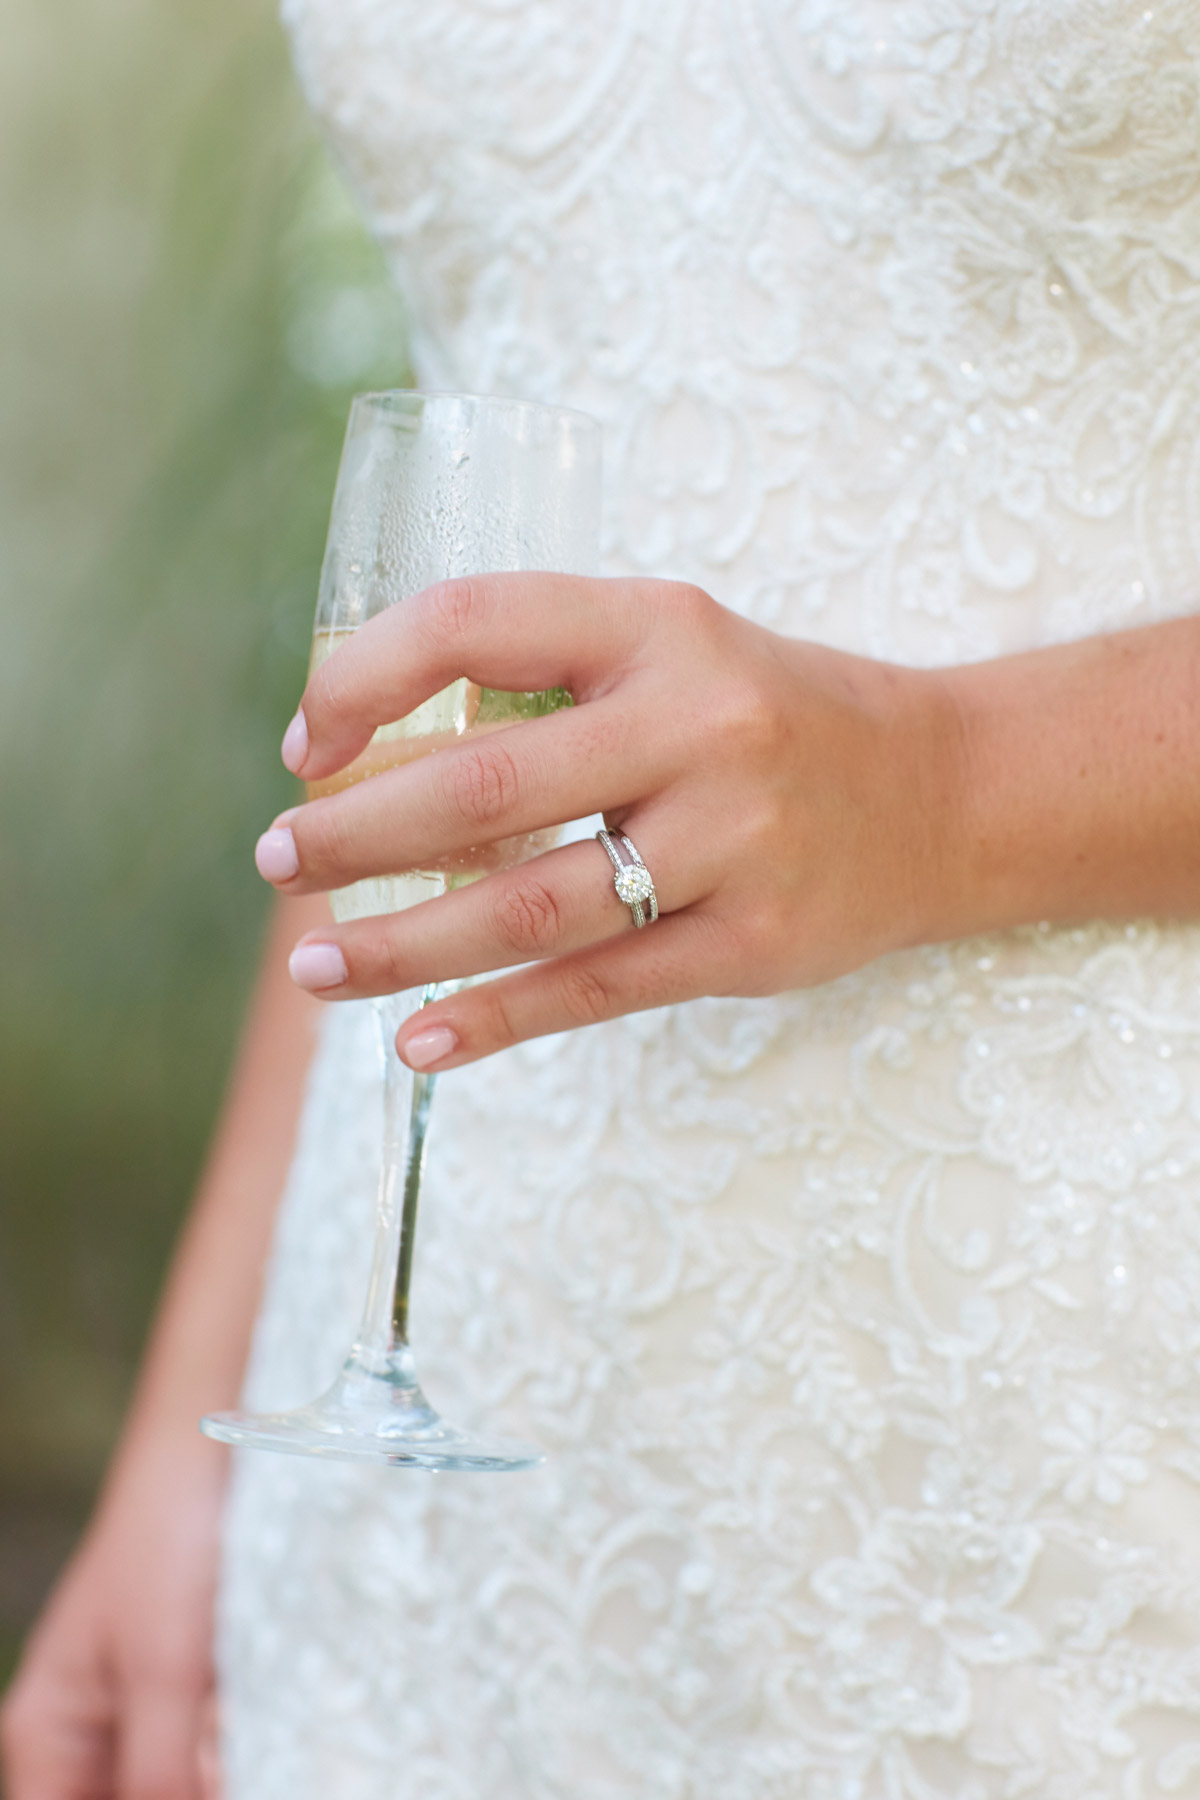 Editorial lifestyle photography of a woman in a wedding dress holding a champagne flute